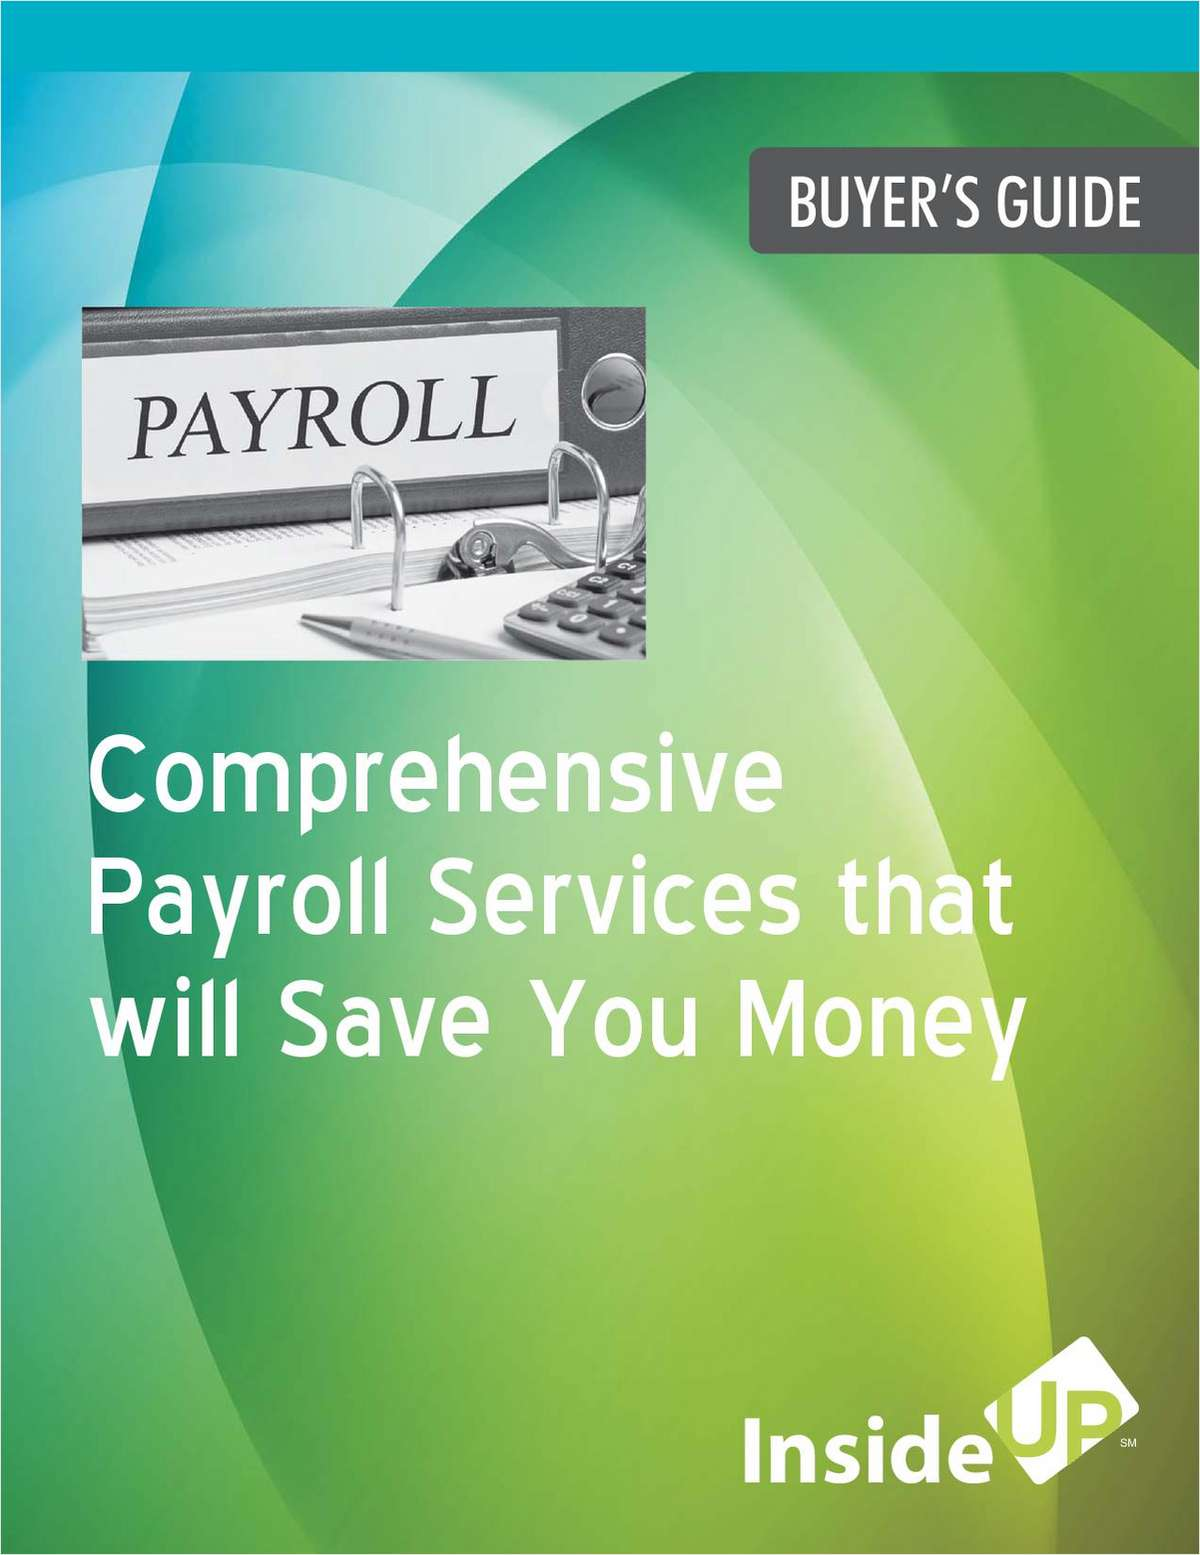 Comprehensive Payroll Services that will Save You Money